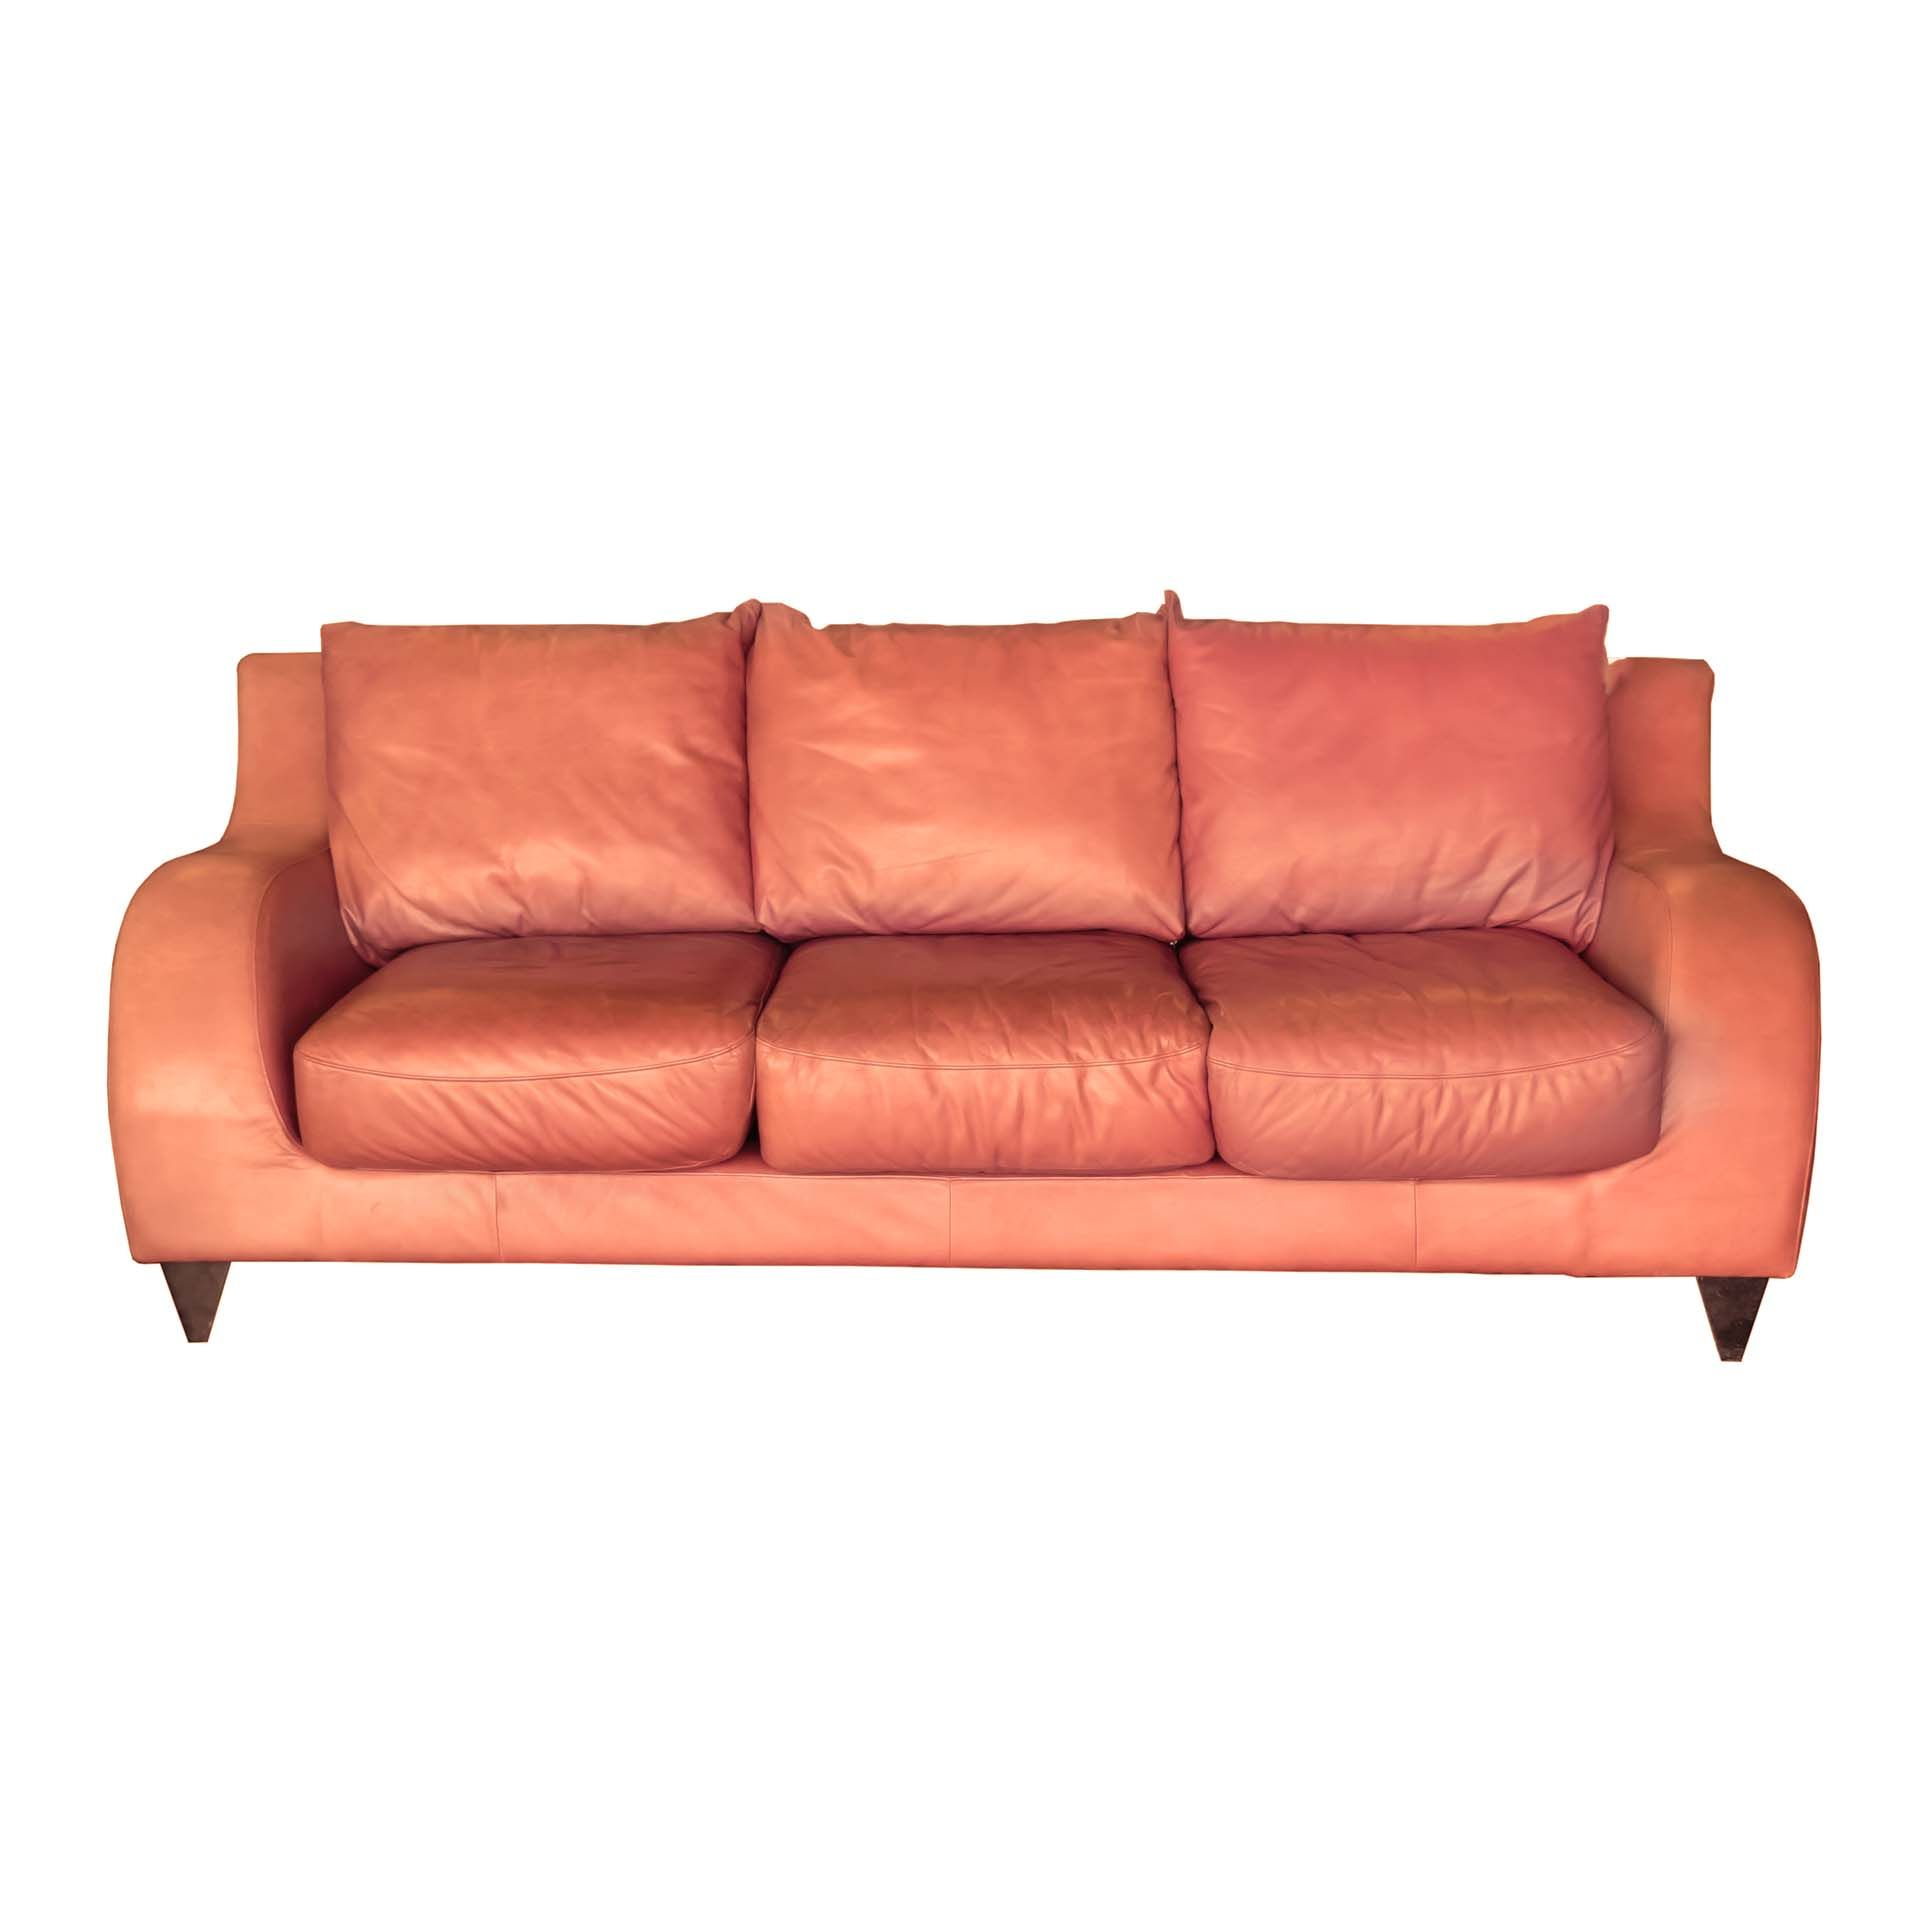 Surprising By American Leather Inc This Contemporary Sofa Has A Alphanode Cool Chair Designs And Ideas Alphanodeonline